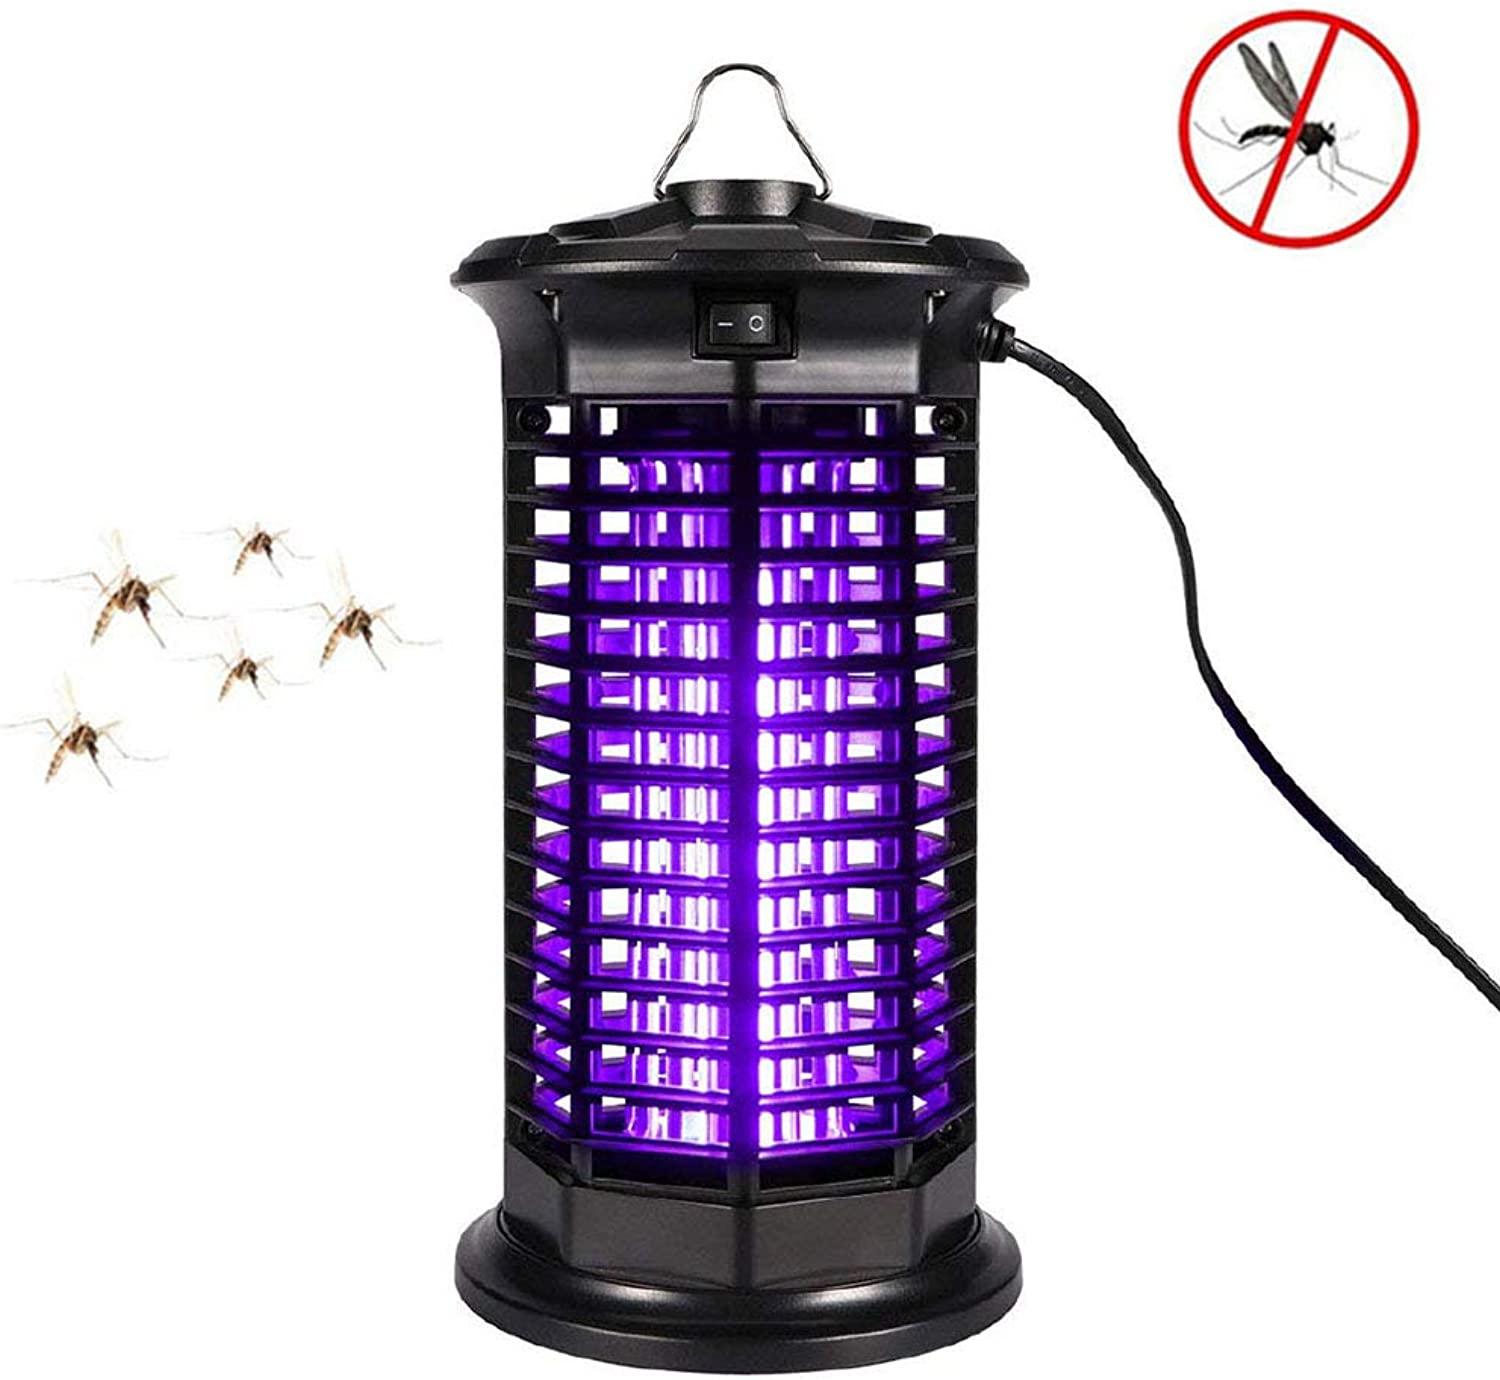 Fly Mosquito Killer,Electric Bug Zapper  Insect Eliminator or Flying Bug Trap Weather Resistant Electronic Lamp for Indoor and Outdoor